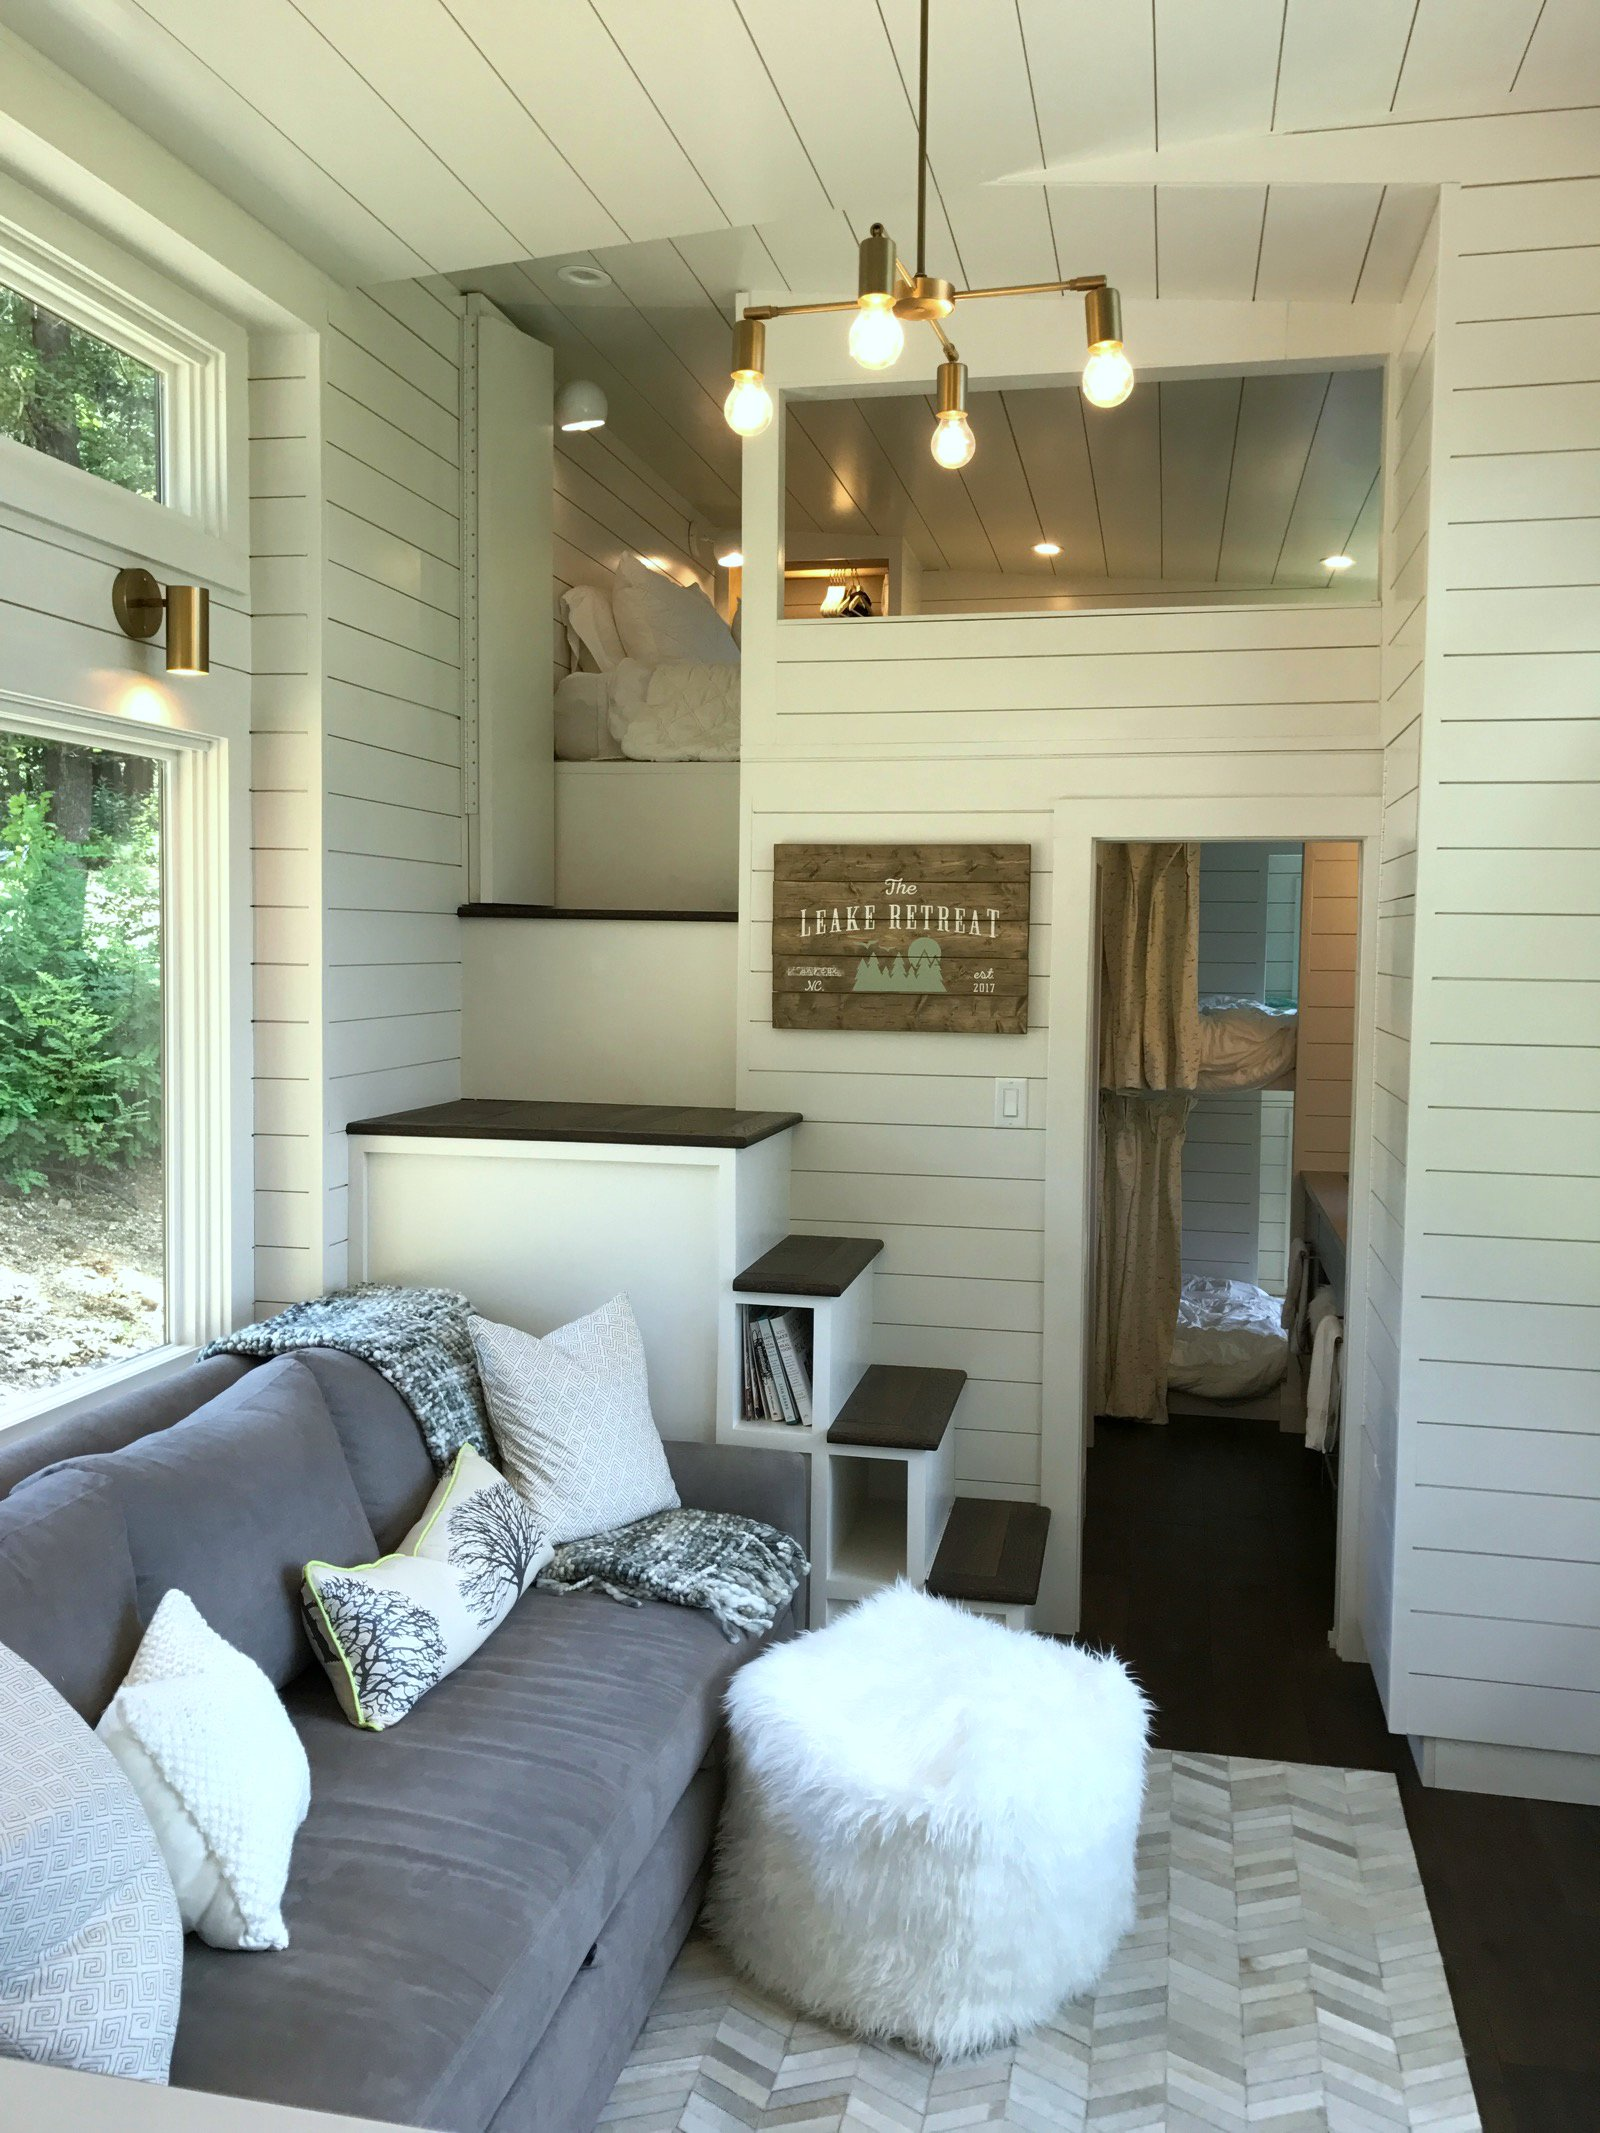 Tiny Home Designs: What's In Our New Tiny House Kitchen